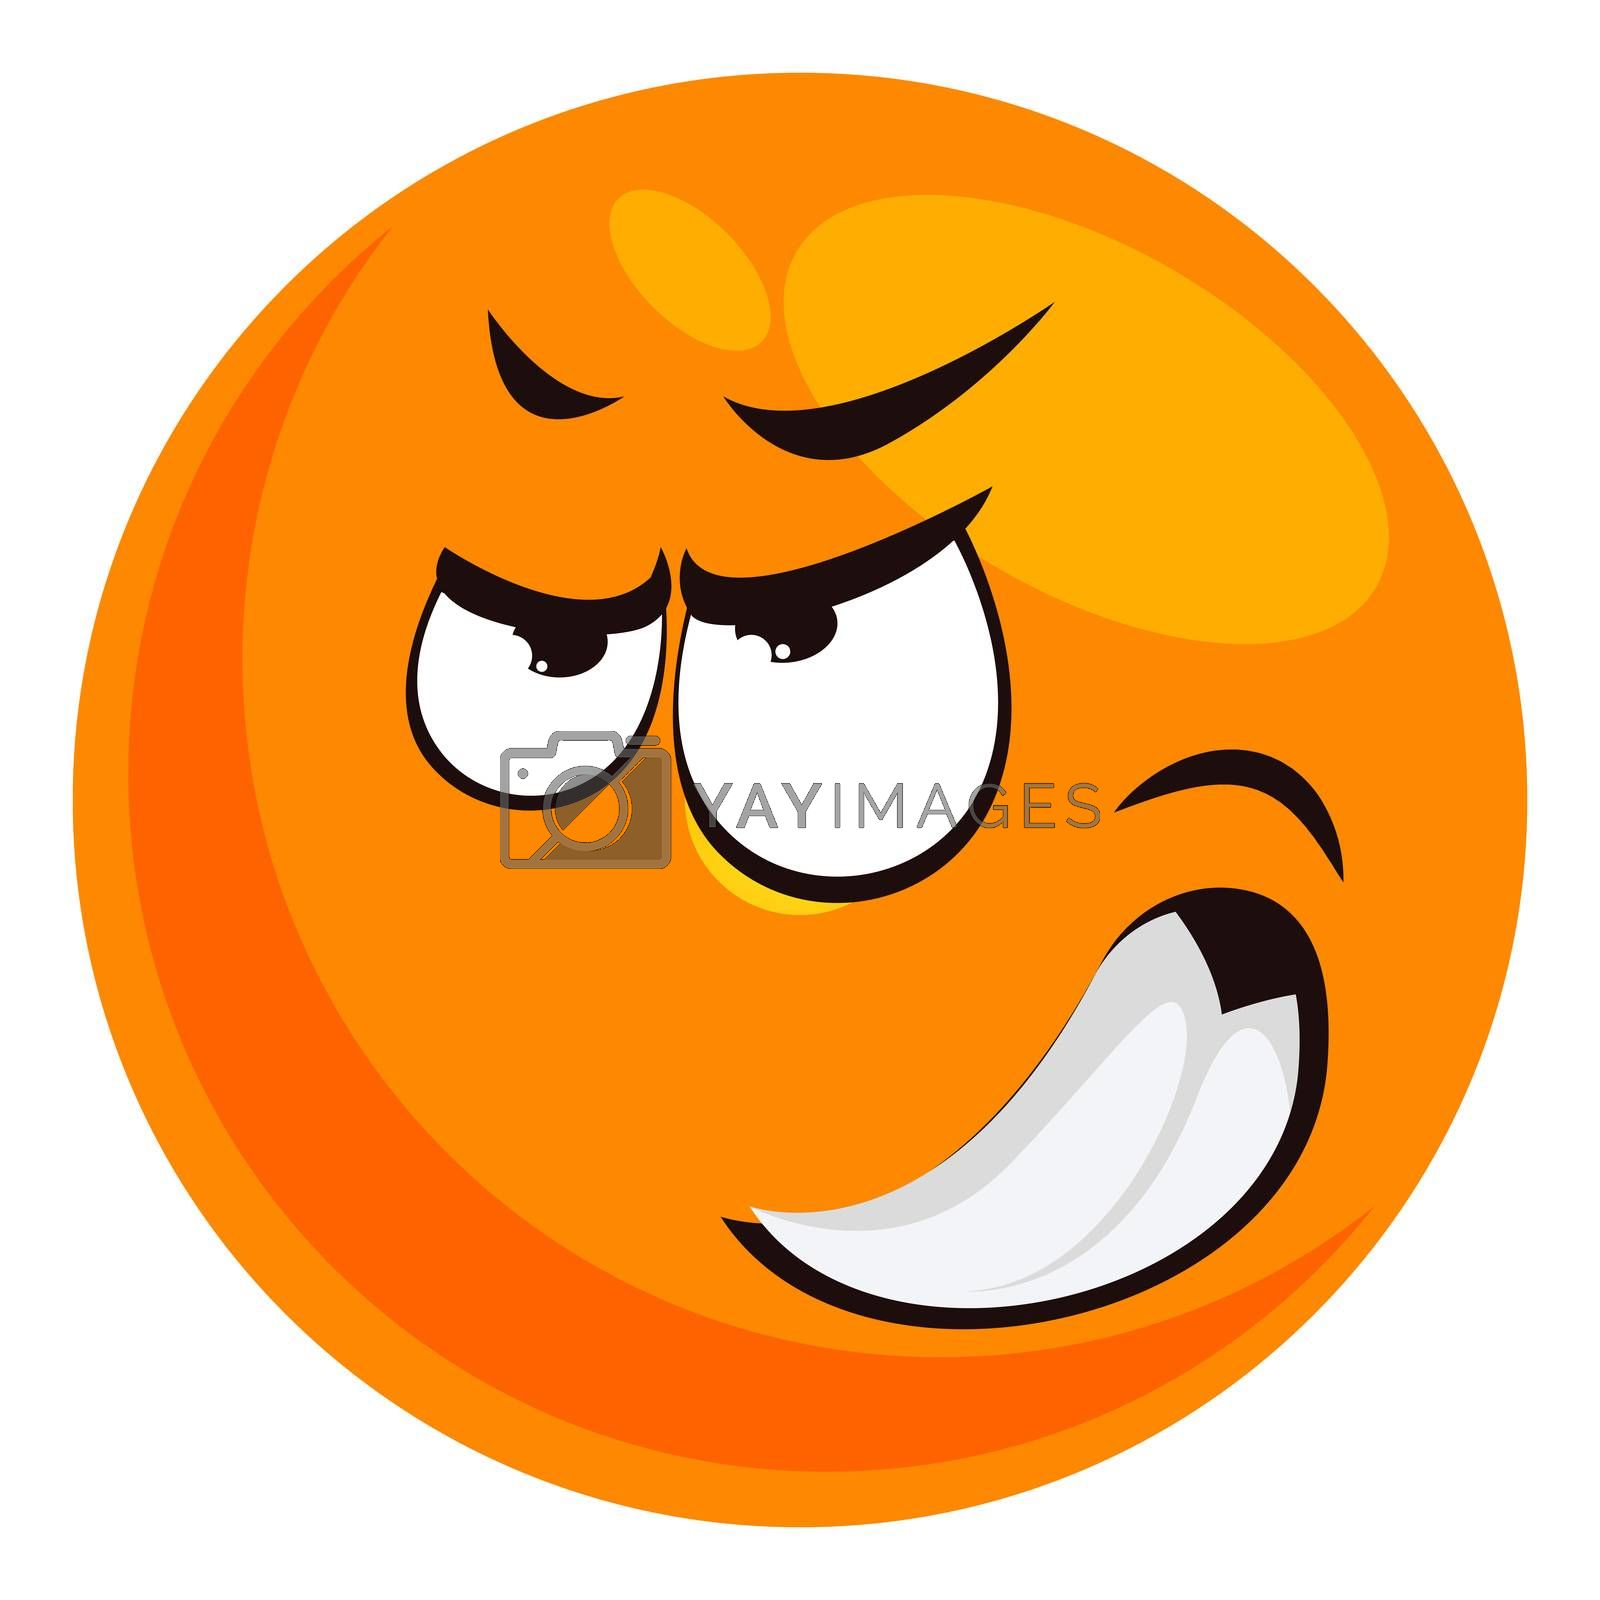 Royalty free image of Angry emoji, illustration, vector on white background by Morphart